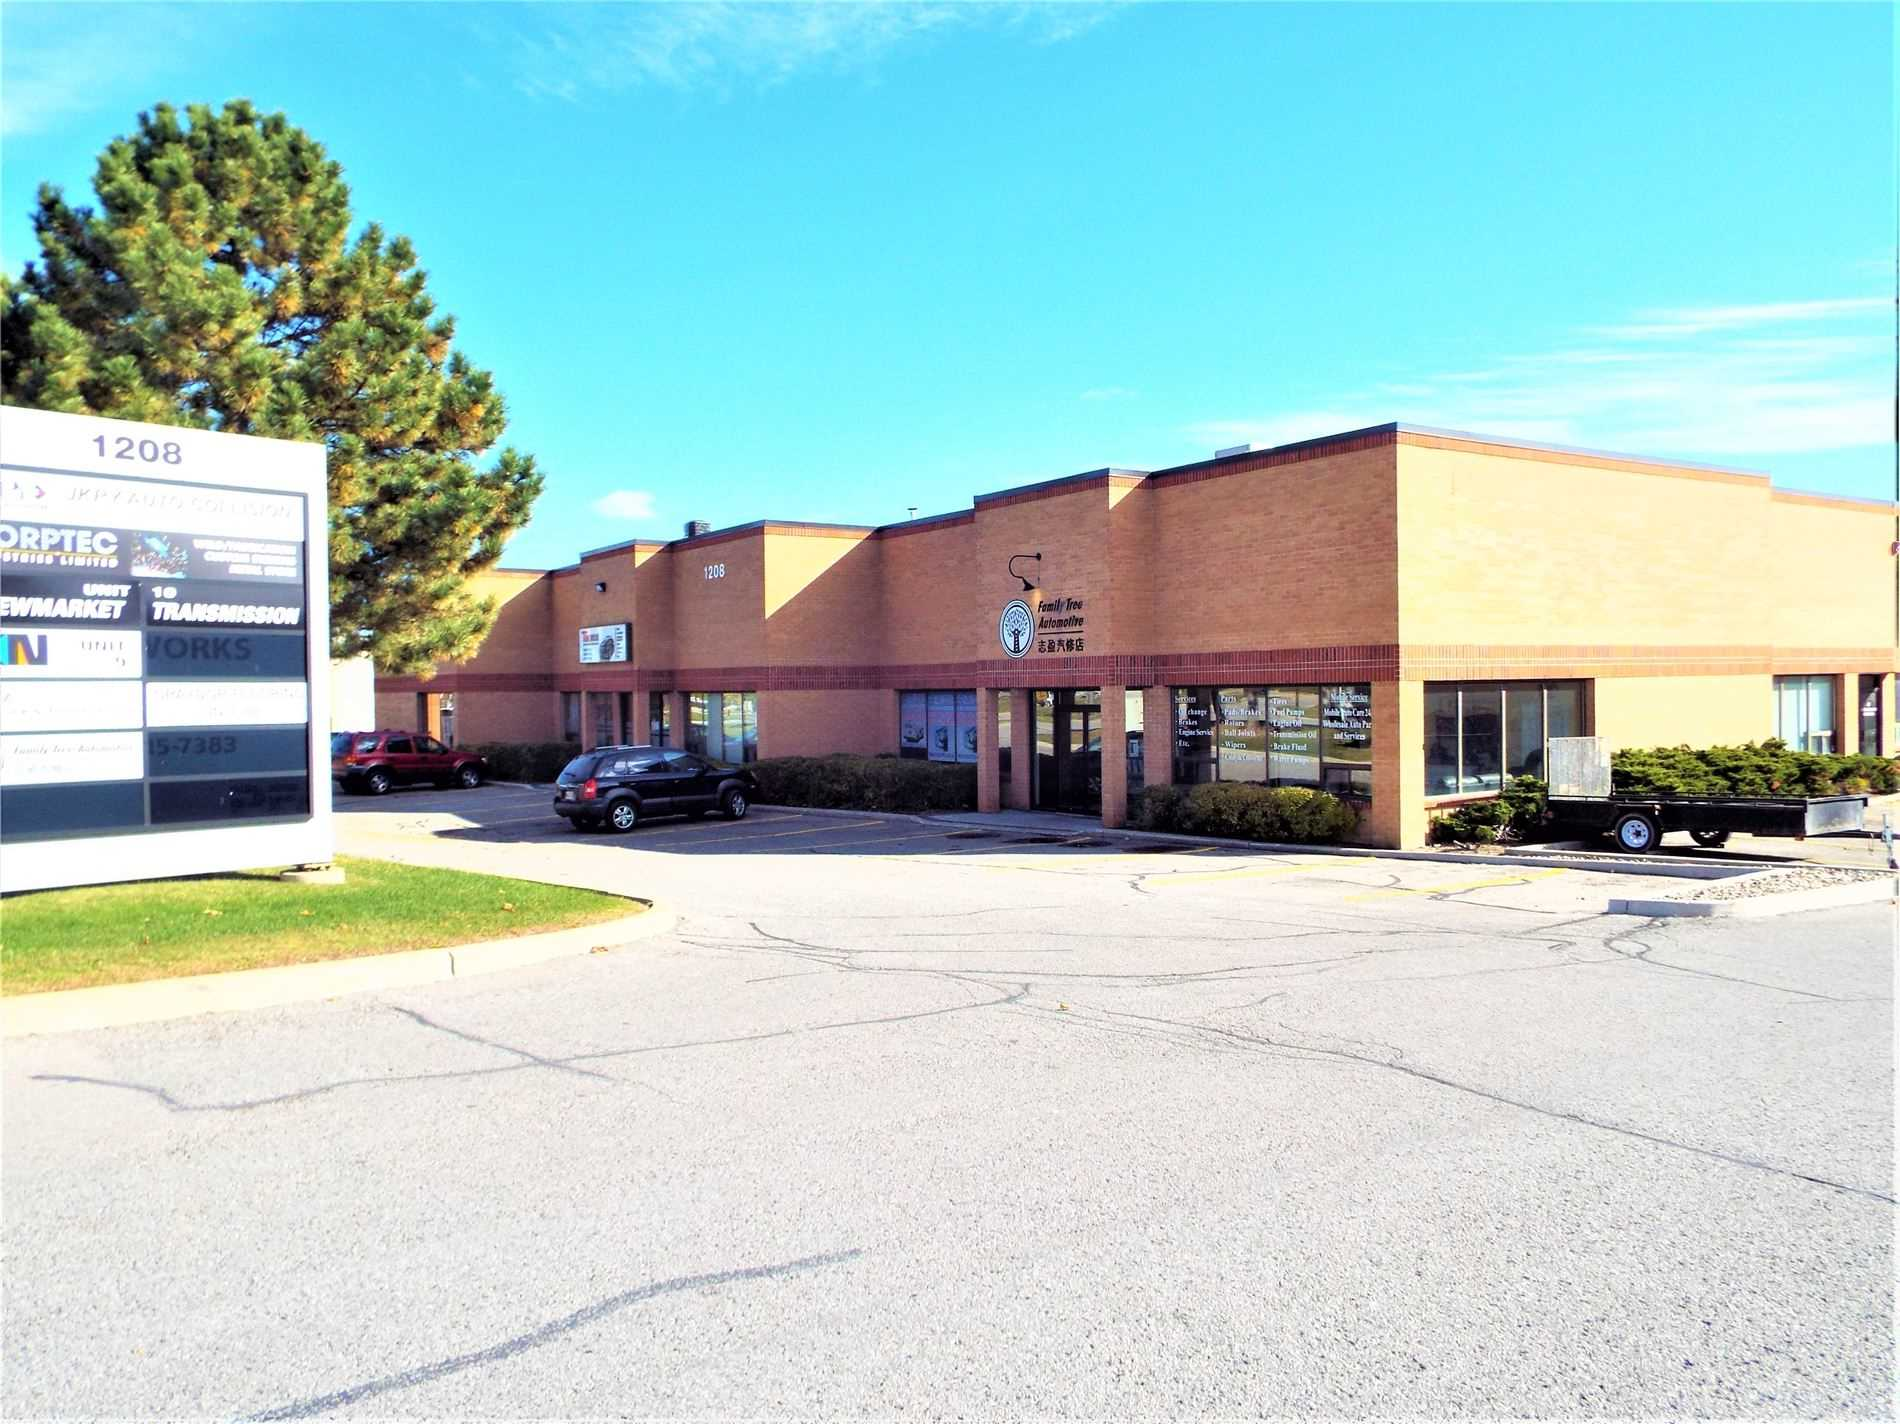 1208 Gorham St, Newmarket, Ontario L3Y 8Y9, ,1 BathroomBathrooms,Industrial,For Sale,Gorham,N4845600